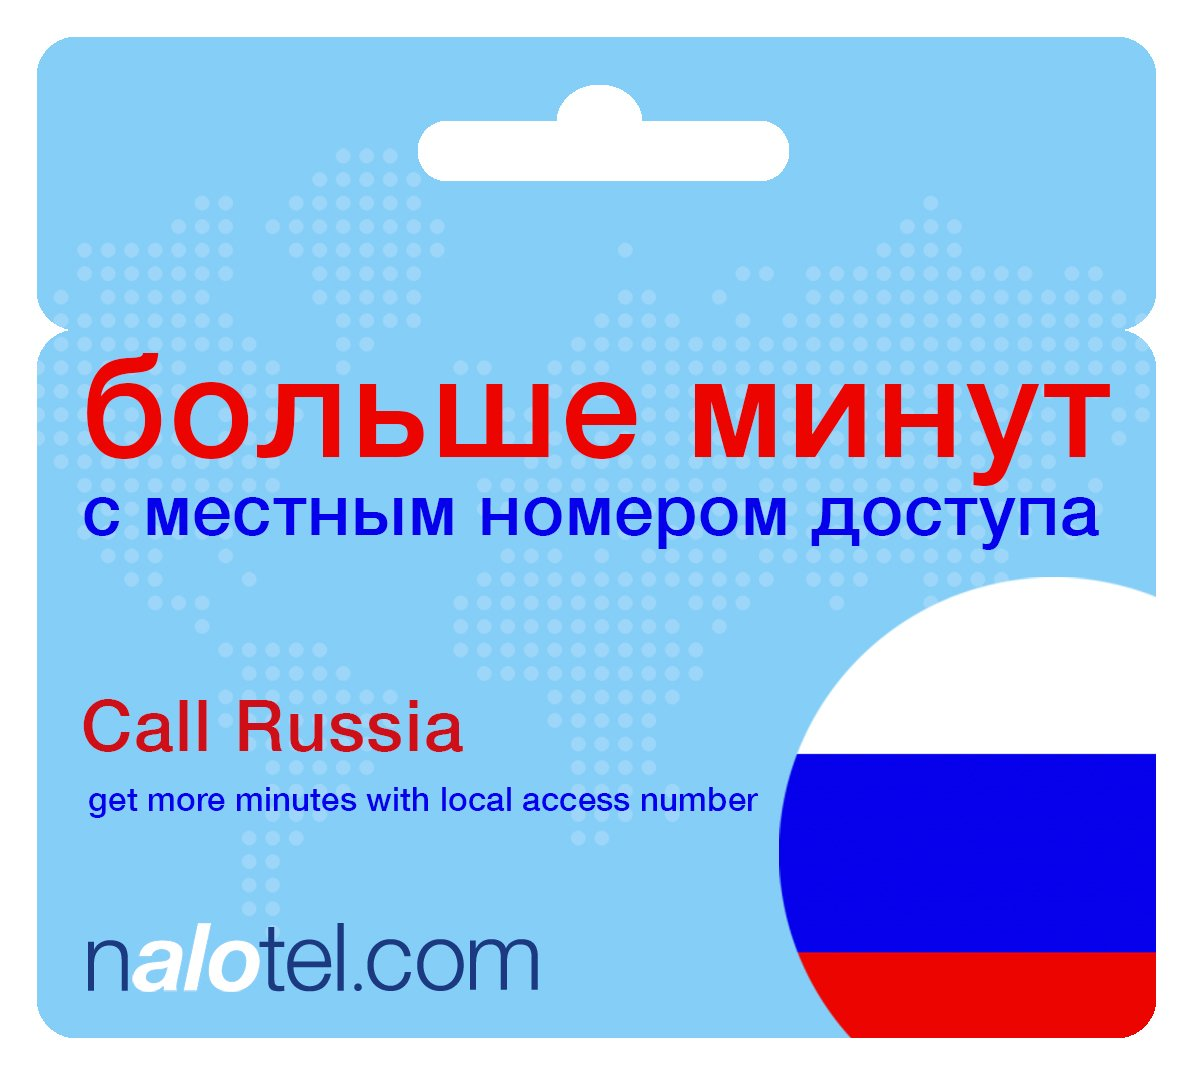 Prepaid Phone Card - Cheap International E-Calling Card $10 for Russia with same day emailed PIN, no postage necessary